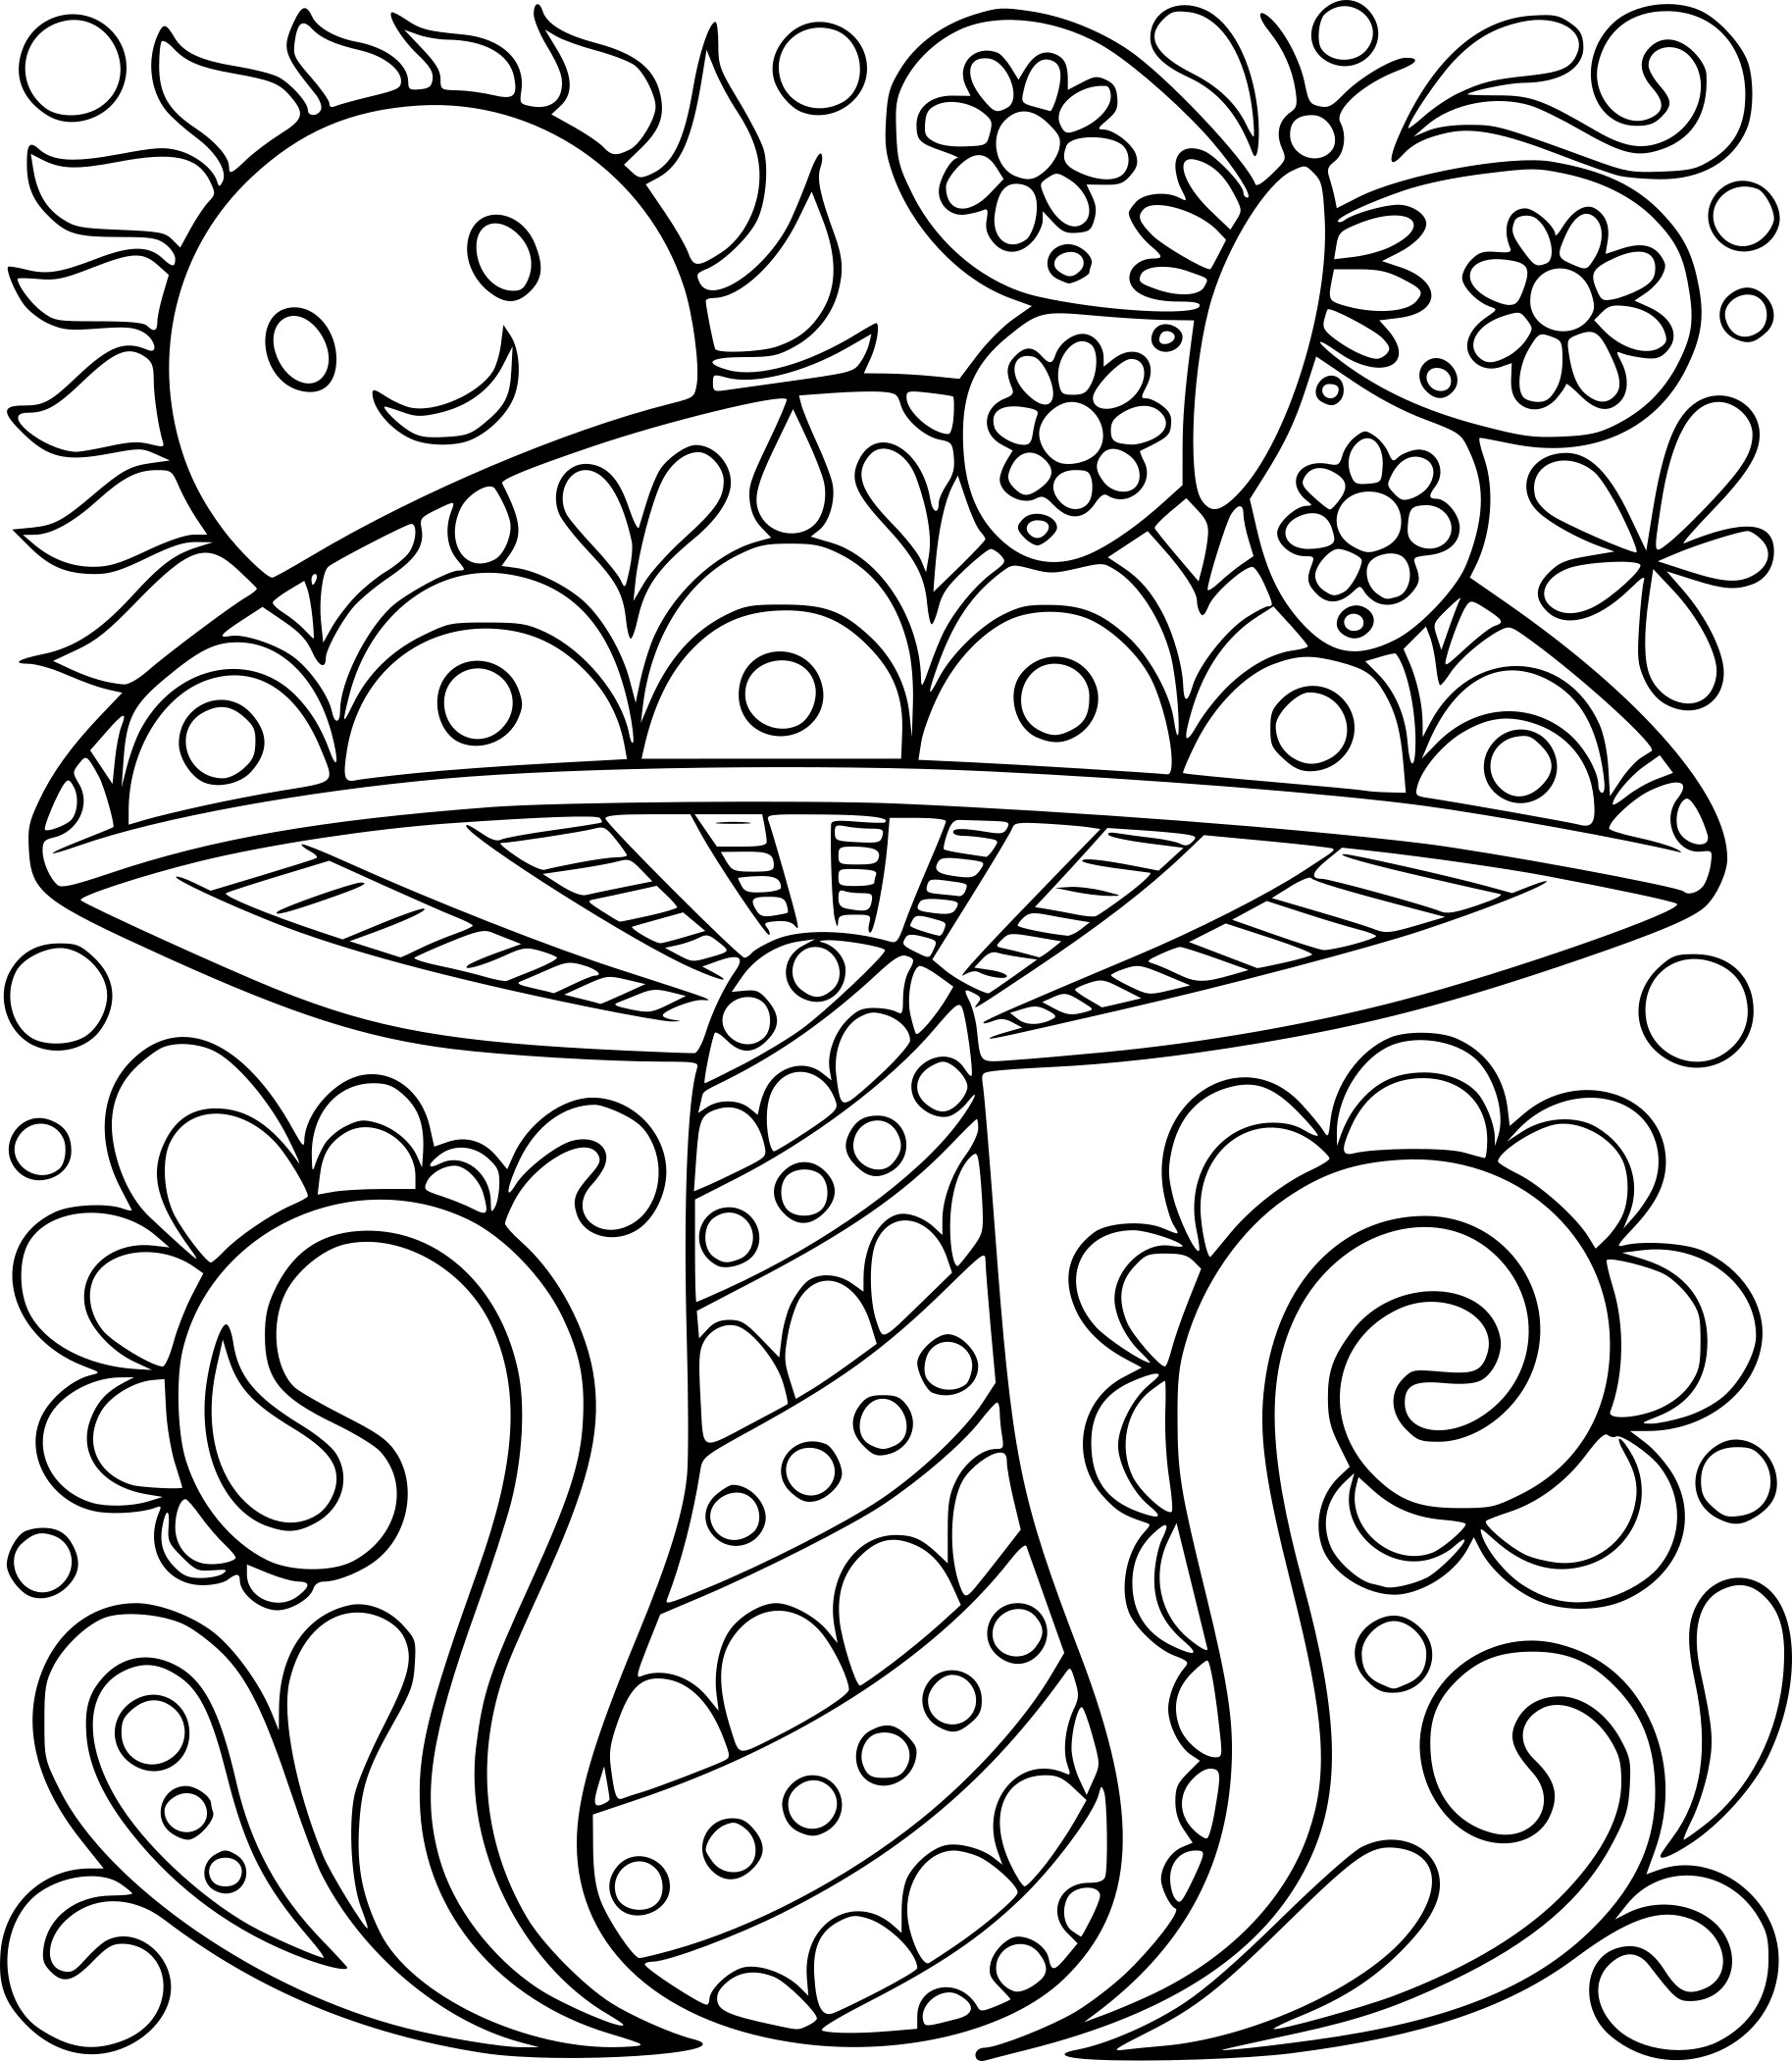 Coloriage adulte champignon